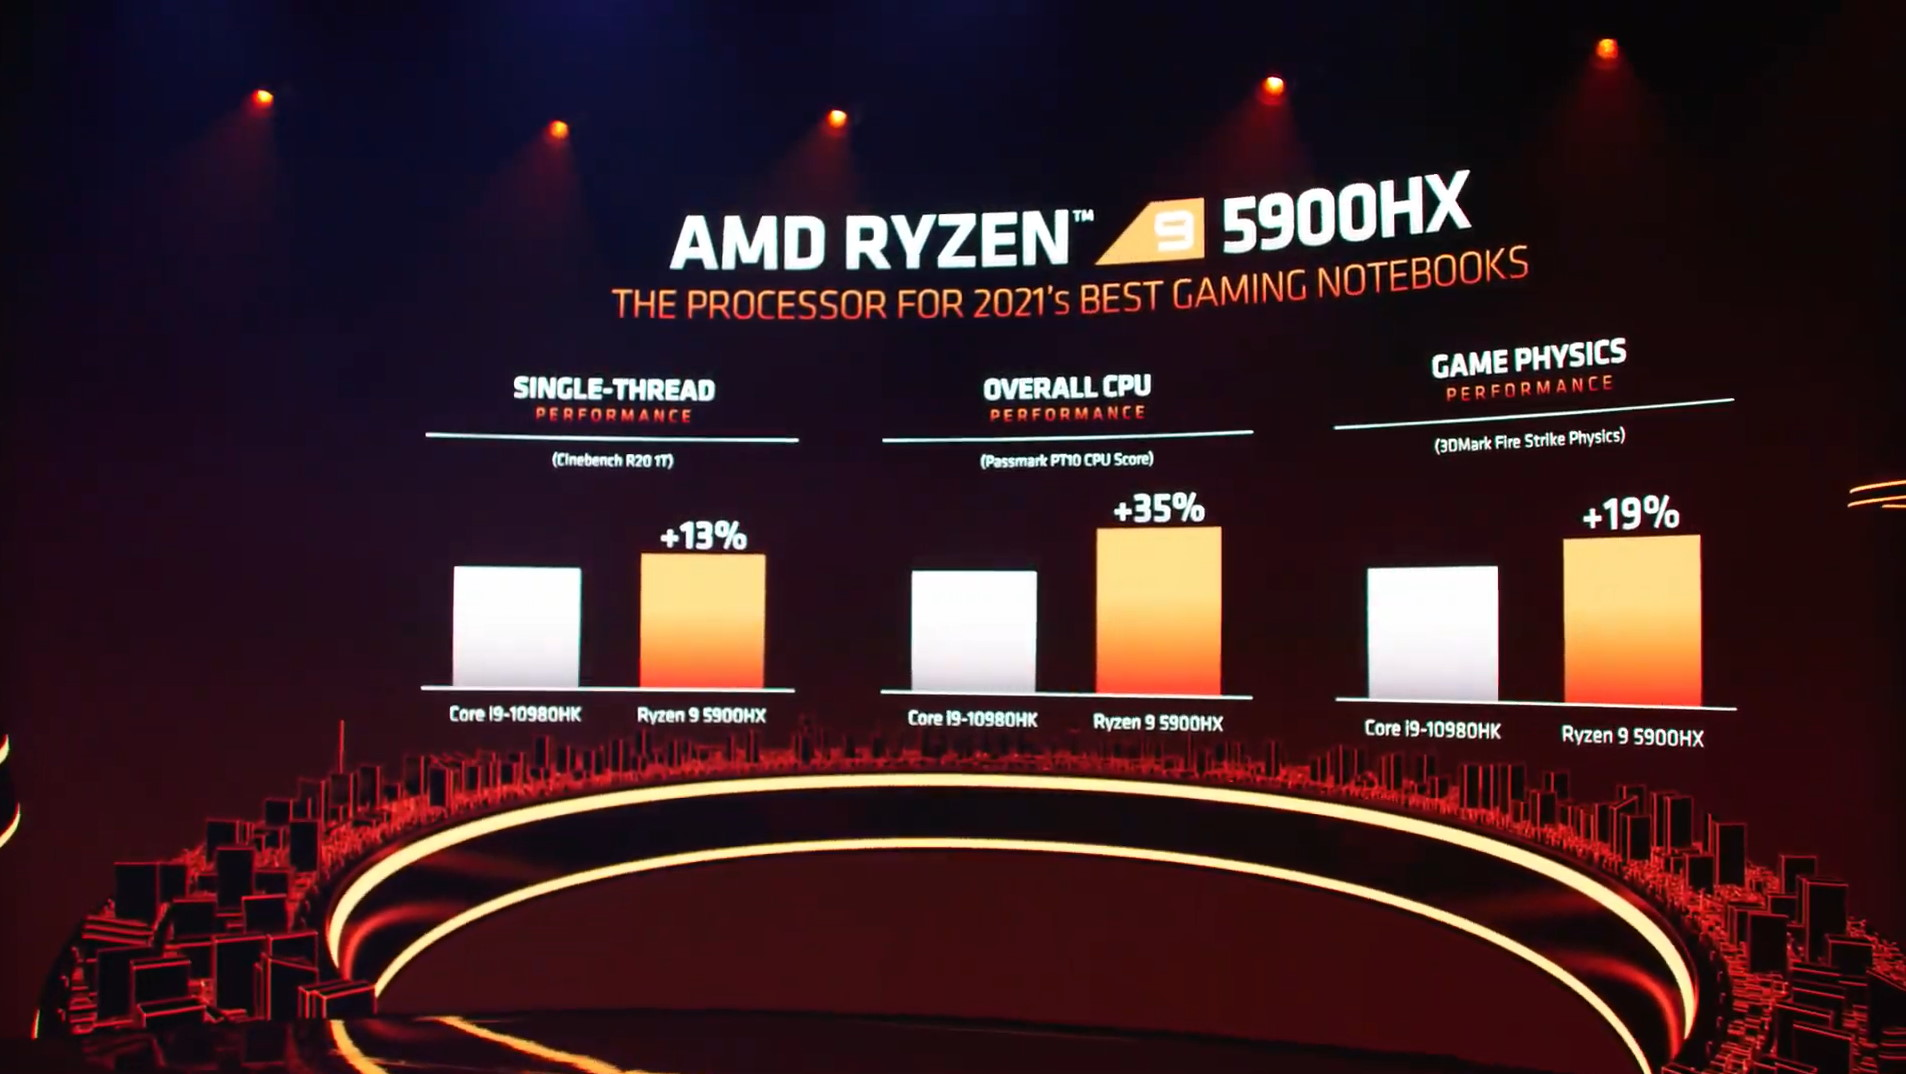 A graph showing benchmark results for AMD's Ryzen 9 5900HX chip.